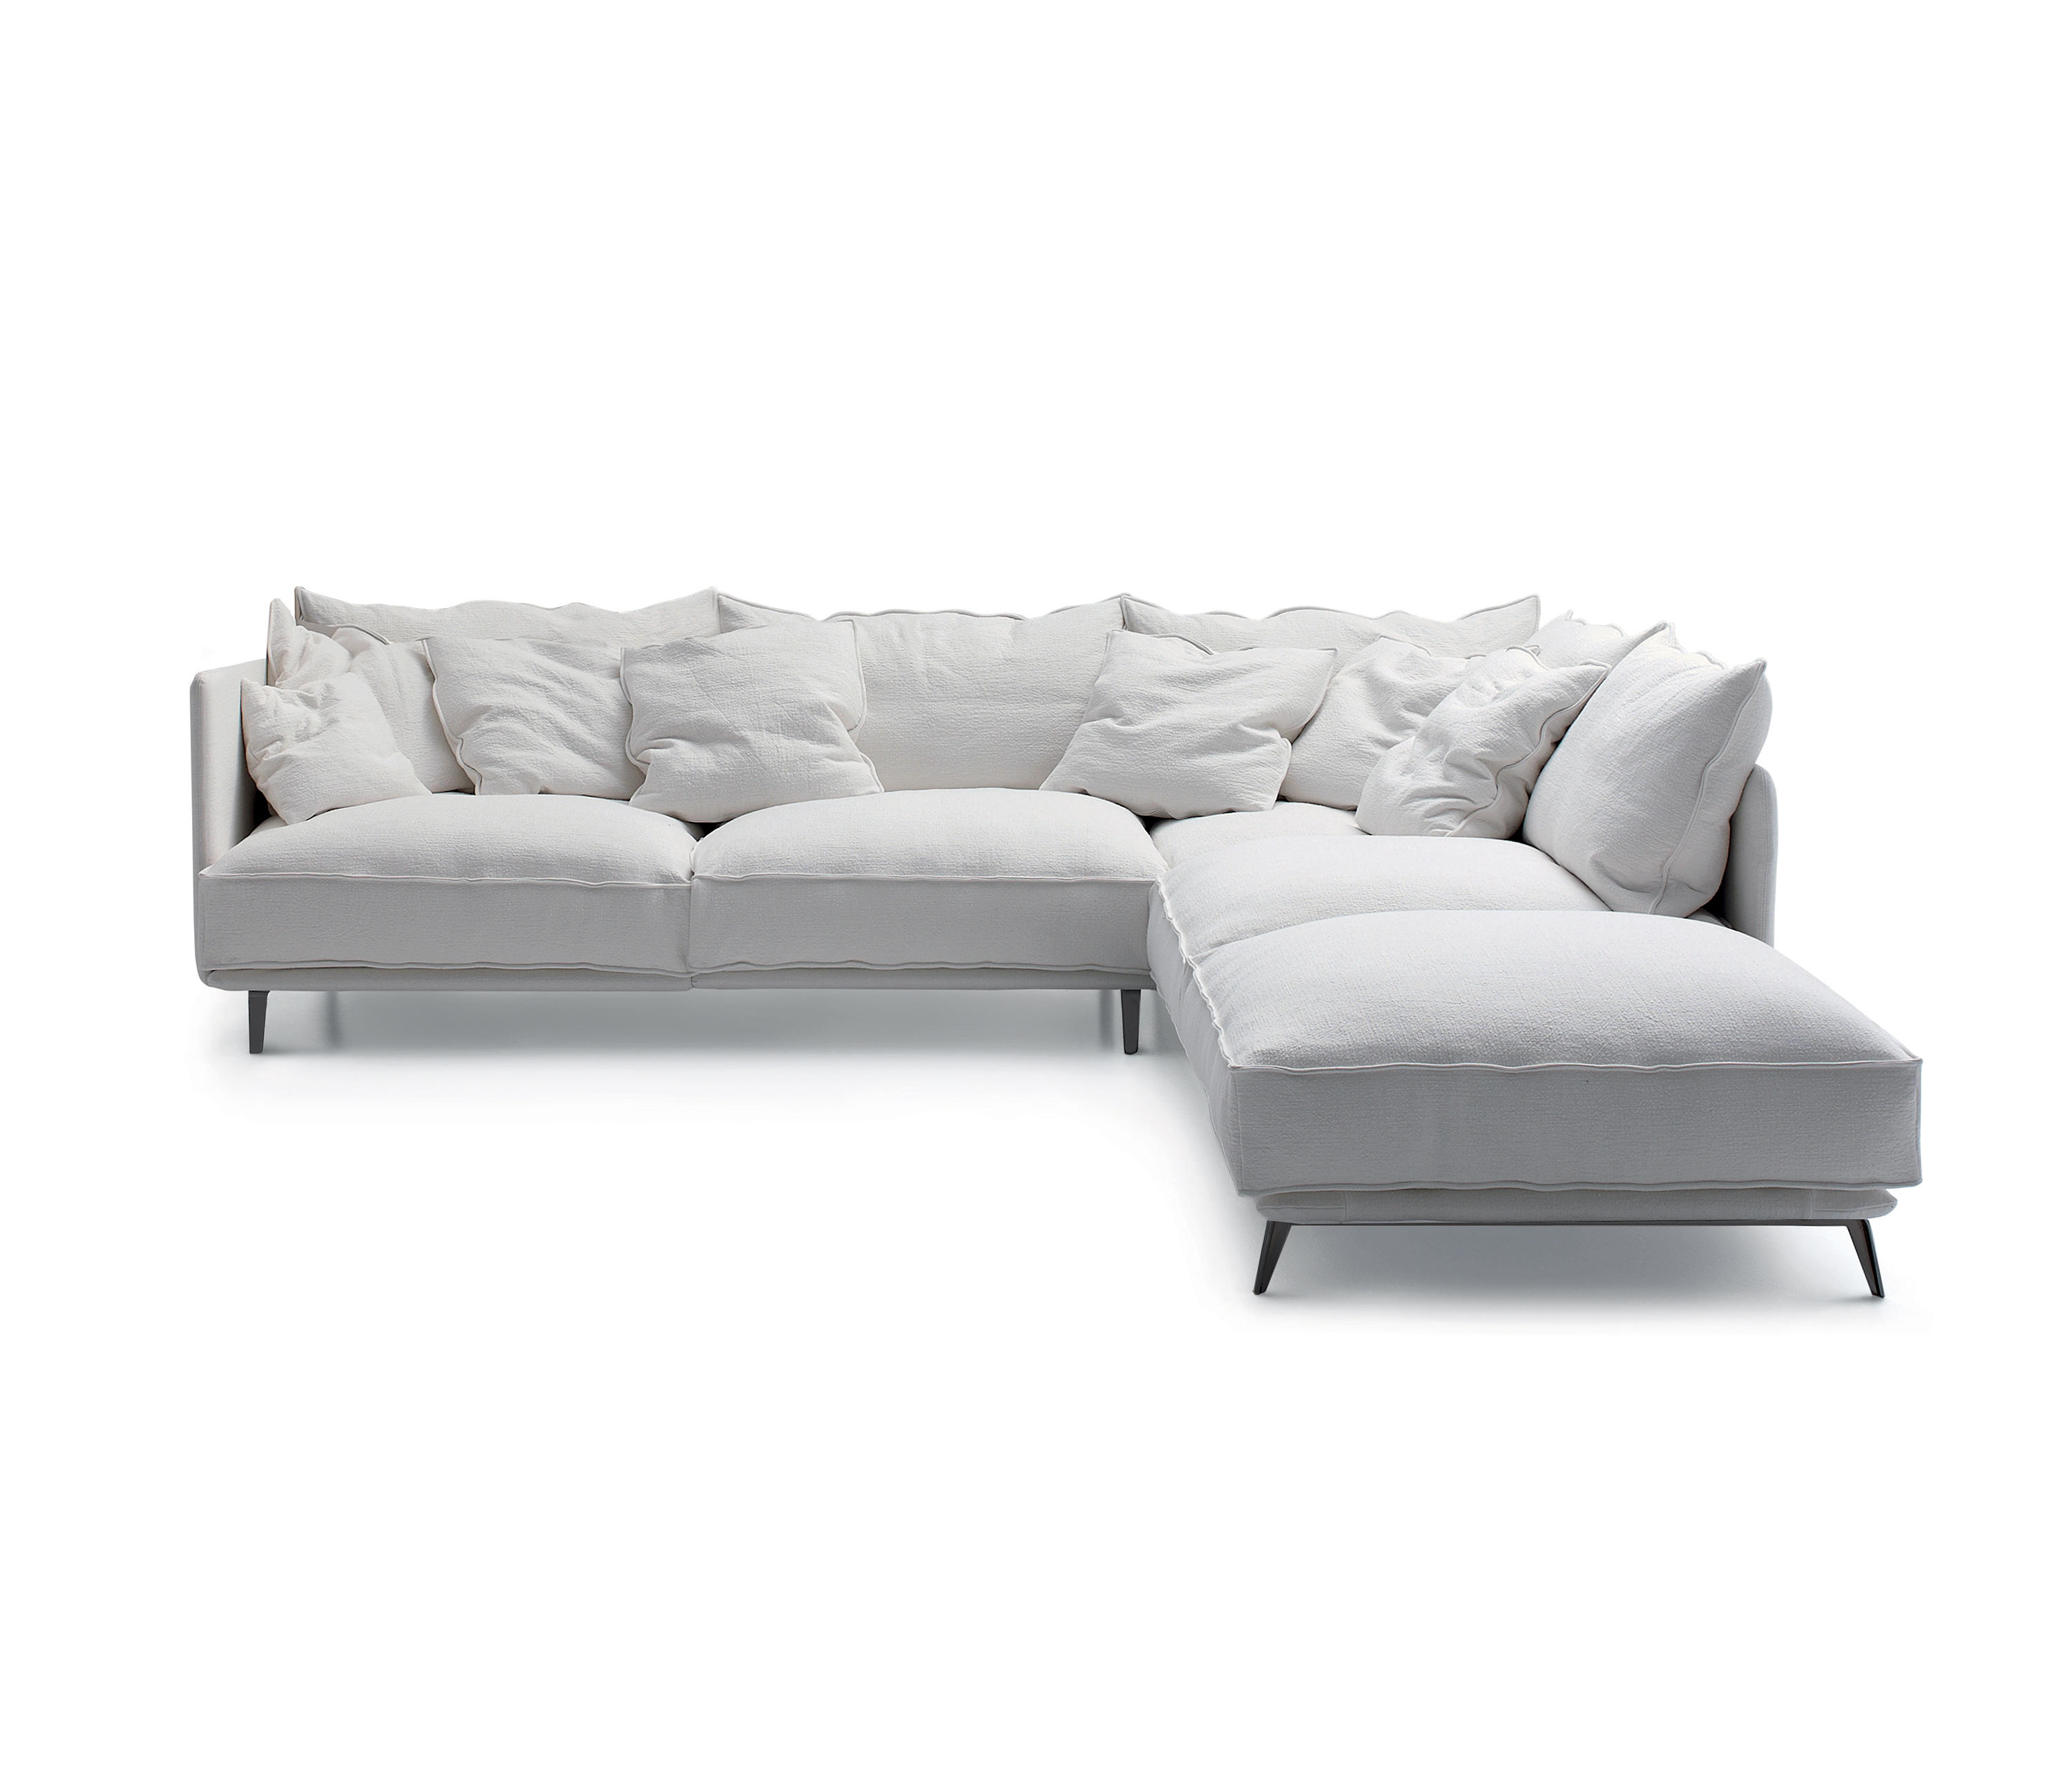 Poltrone E Sofa Gravellona Toce k2 sofa - sofas from arflex | architonic